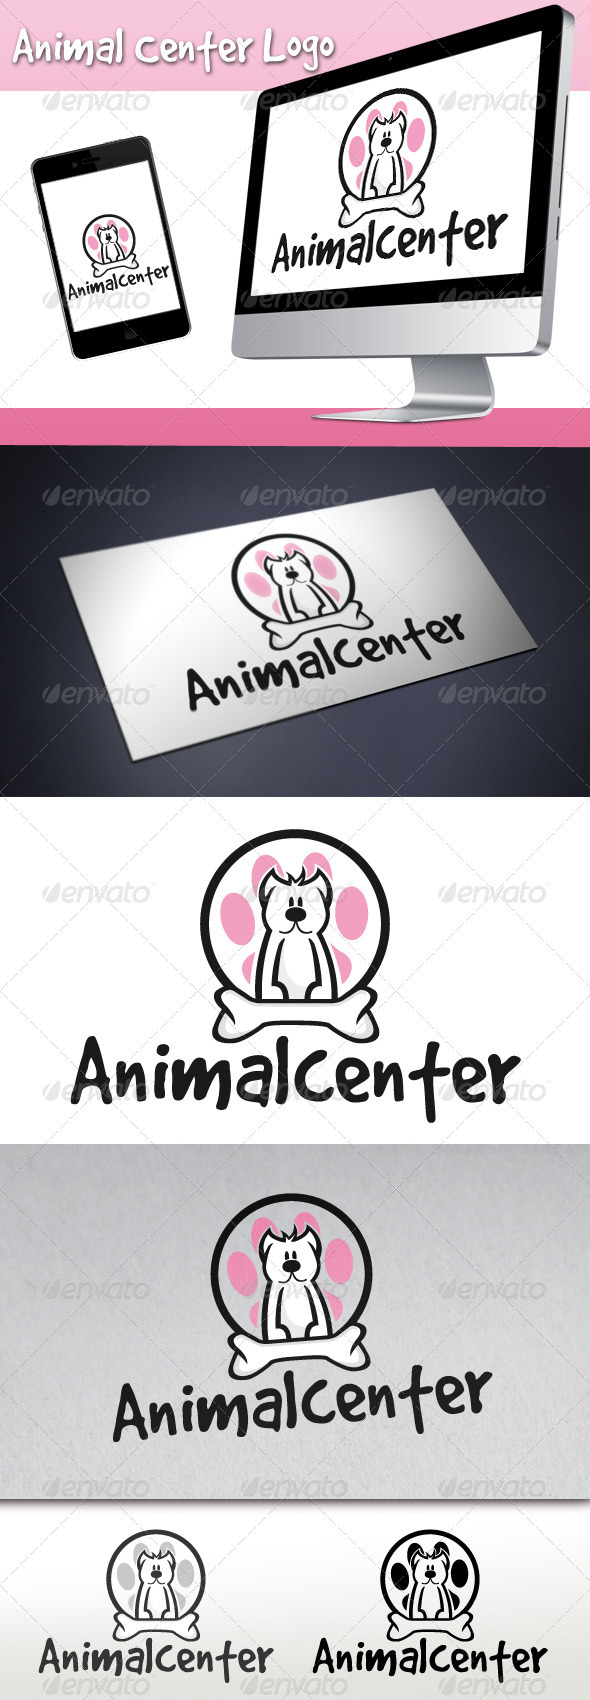 Animal Center Logo - Animals Logo Templates